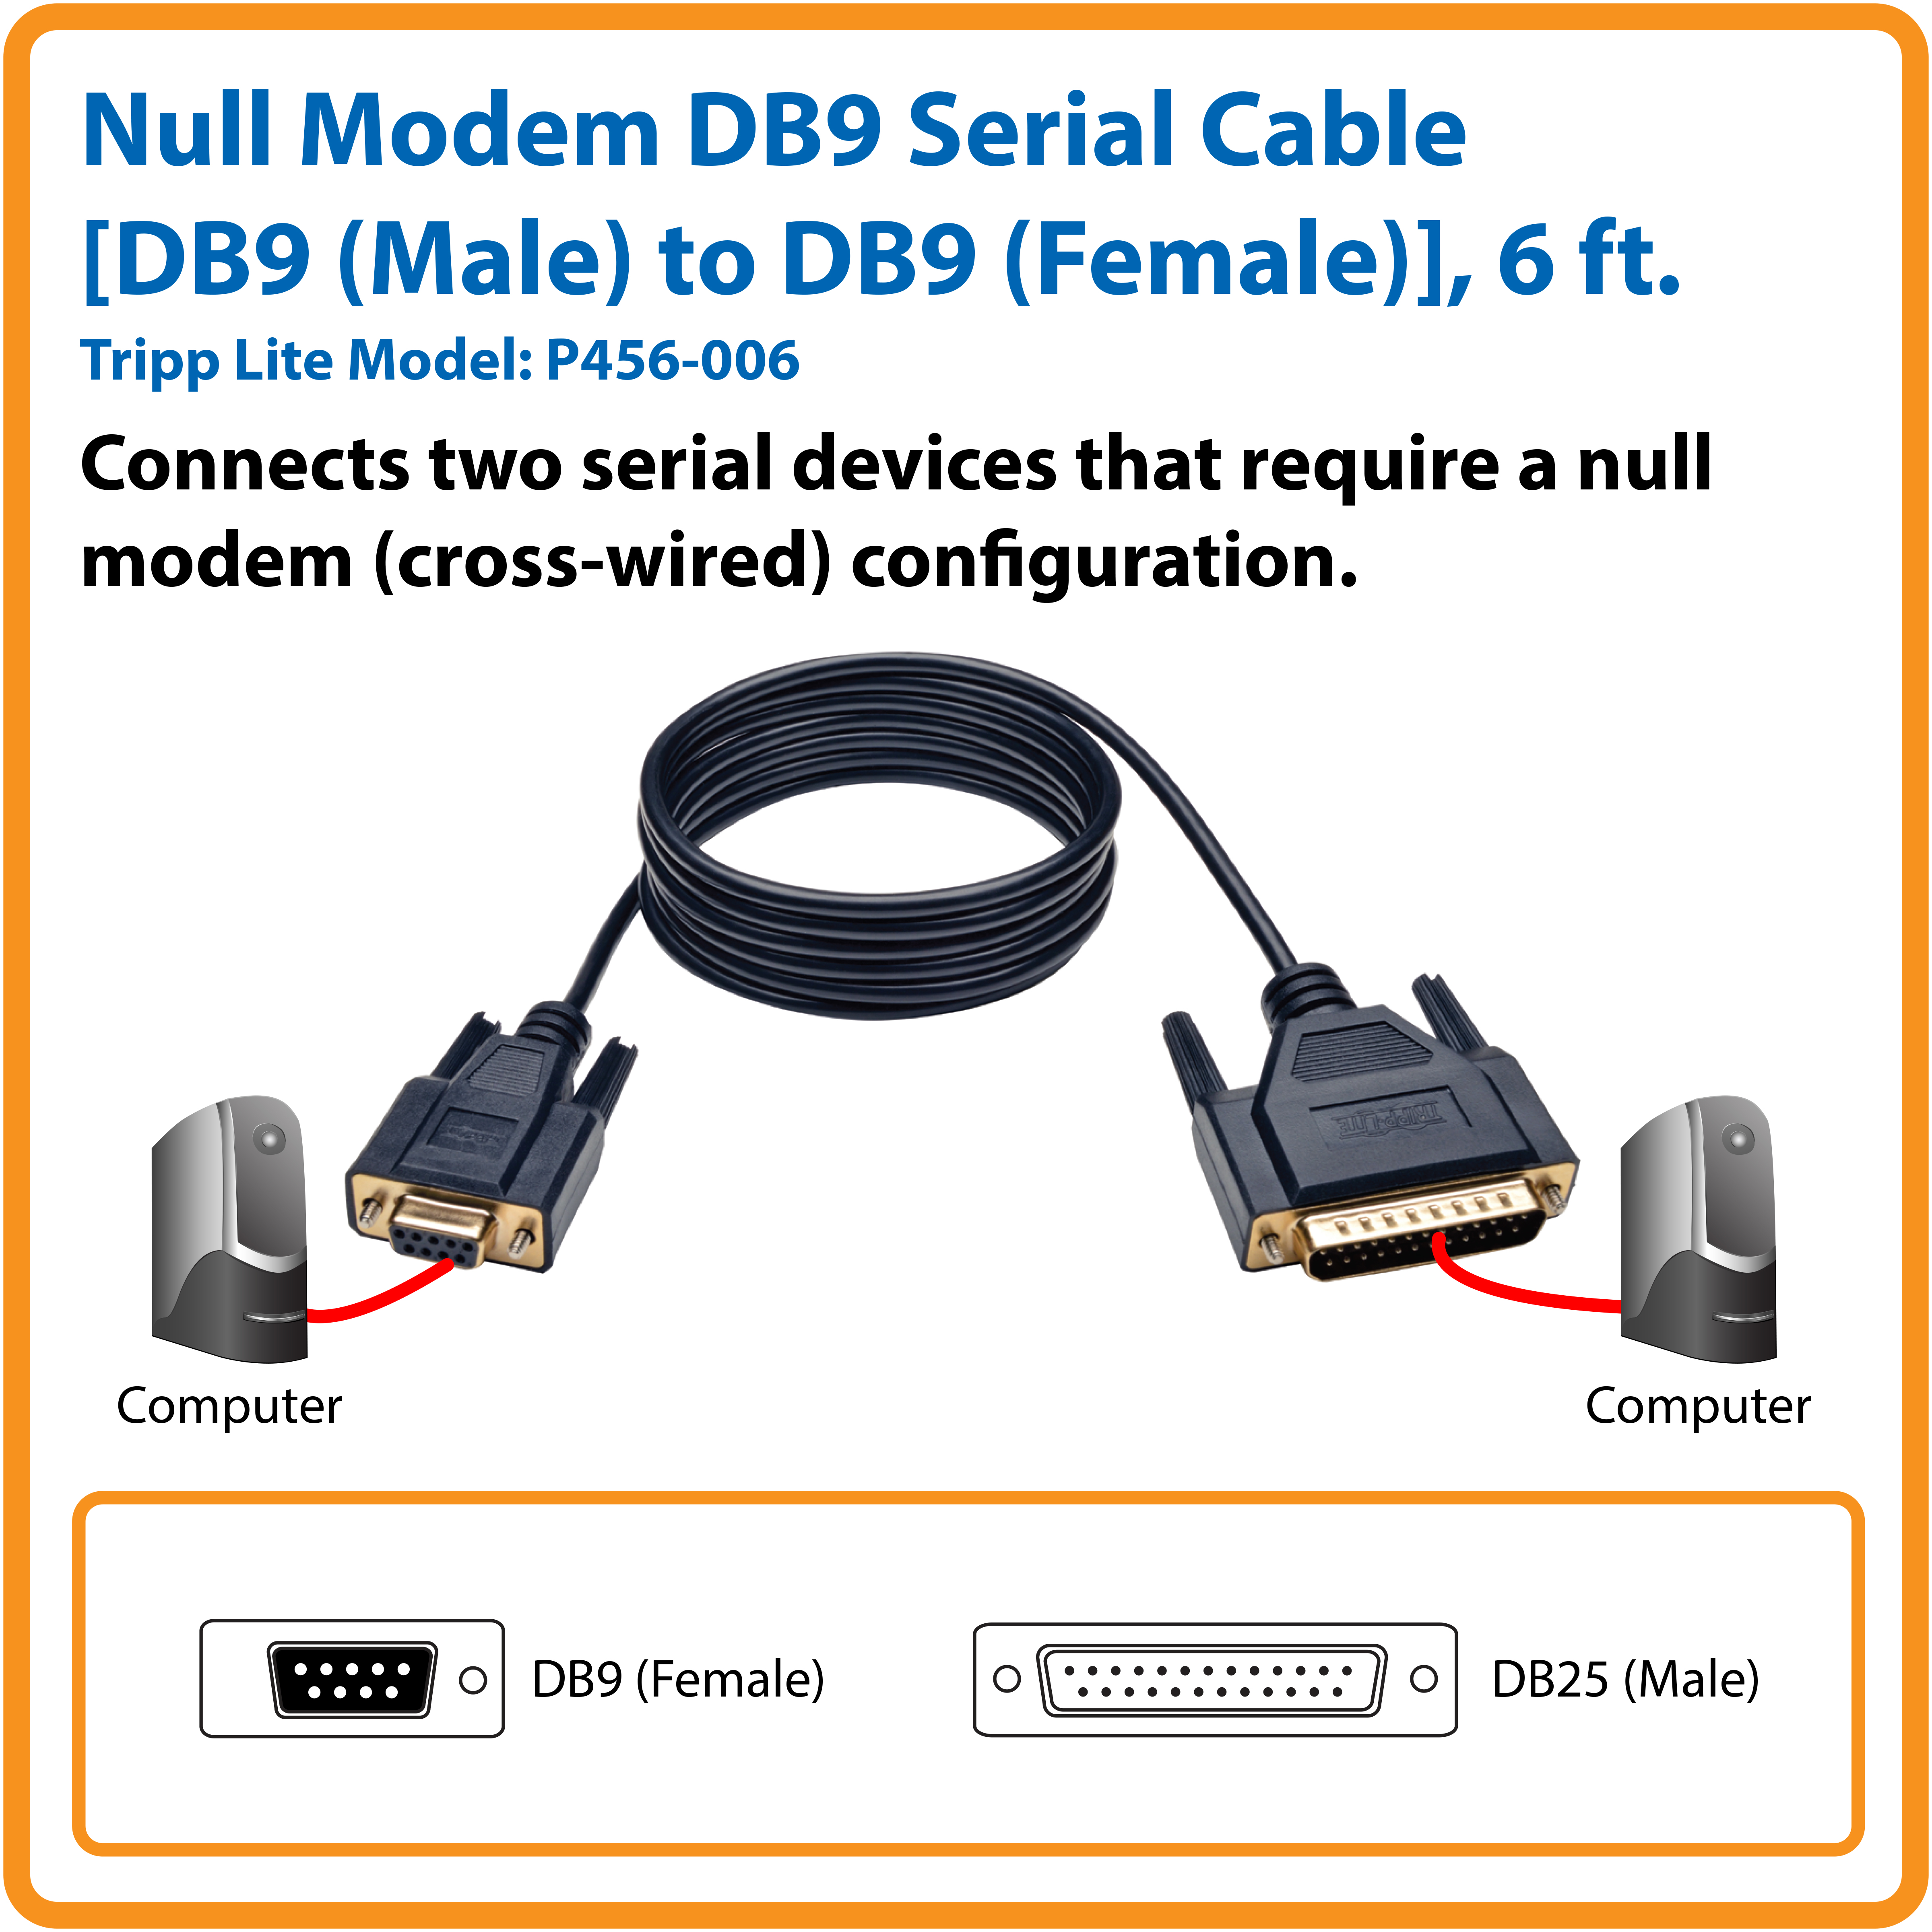 Tripp Lite 6ft Null Modem Serial RS232 Cable Adapter DB9 to BD25 FM 6 by  Office Depot & OfficeMax